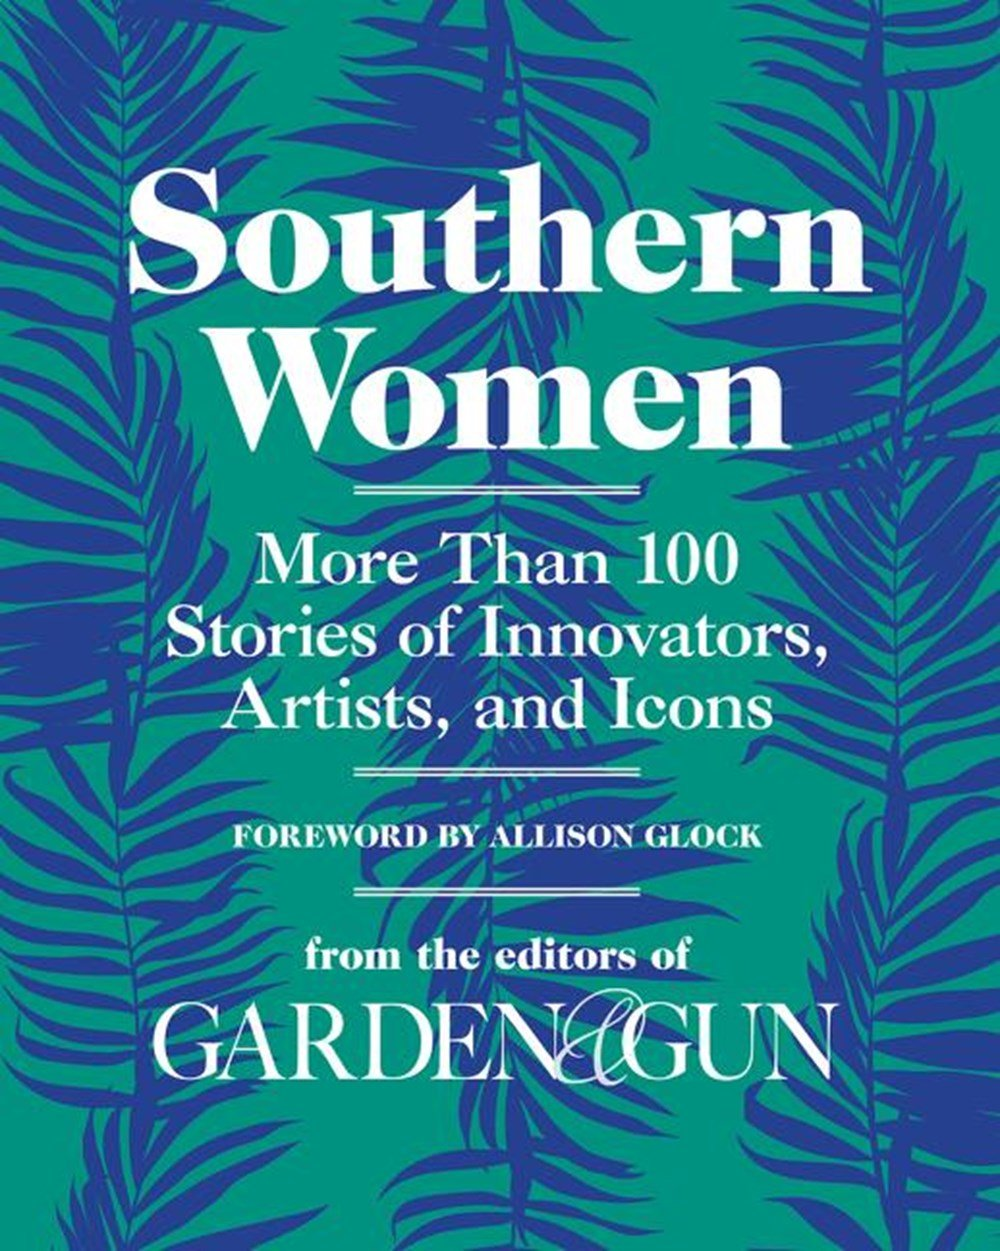 Southern Women More Than 100 Stories of Innovators, Artists, and Icons